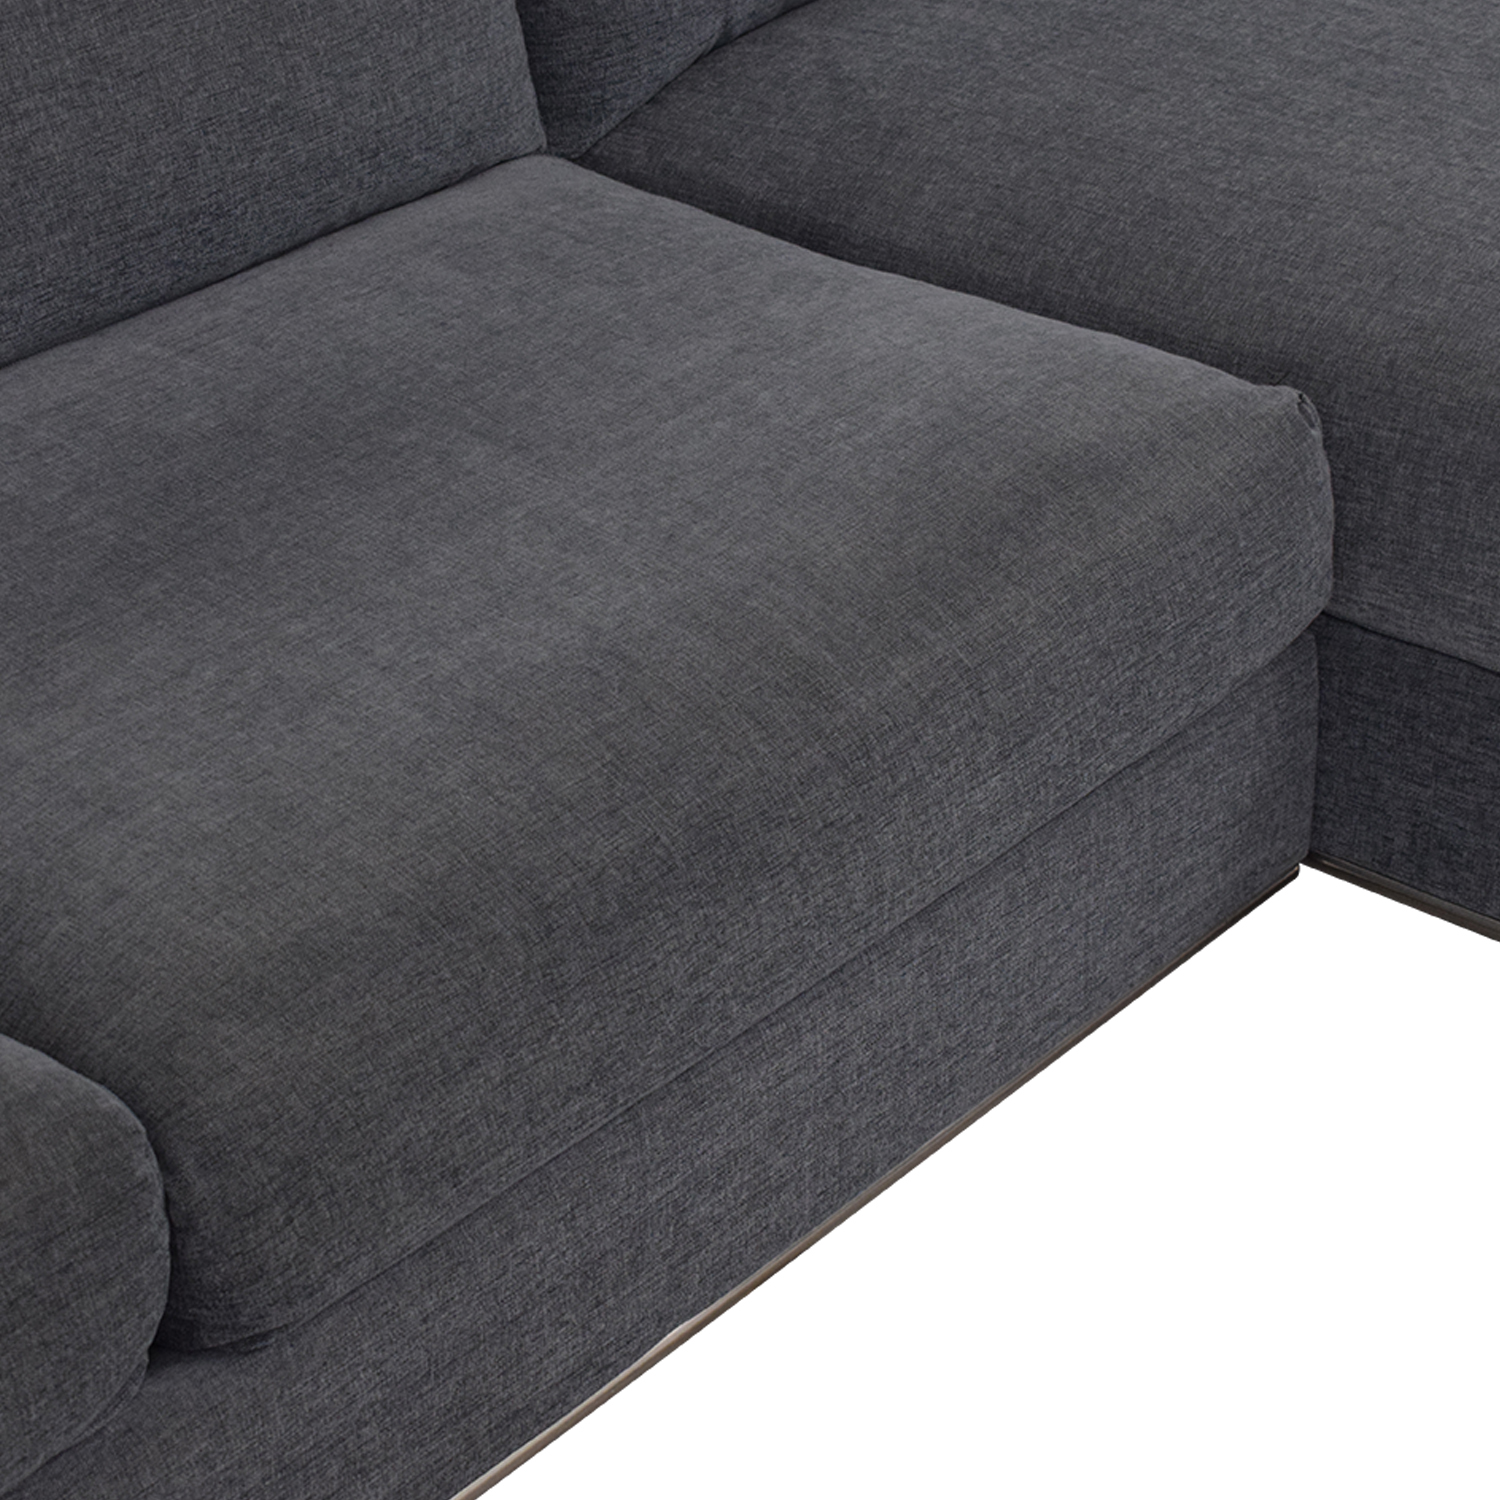 Weiman Weiman Sectional Sofa with Chaise pa